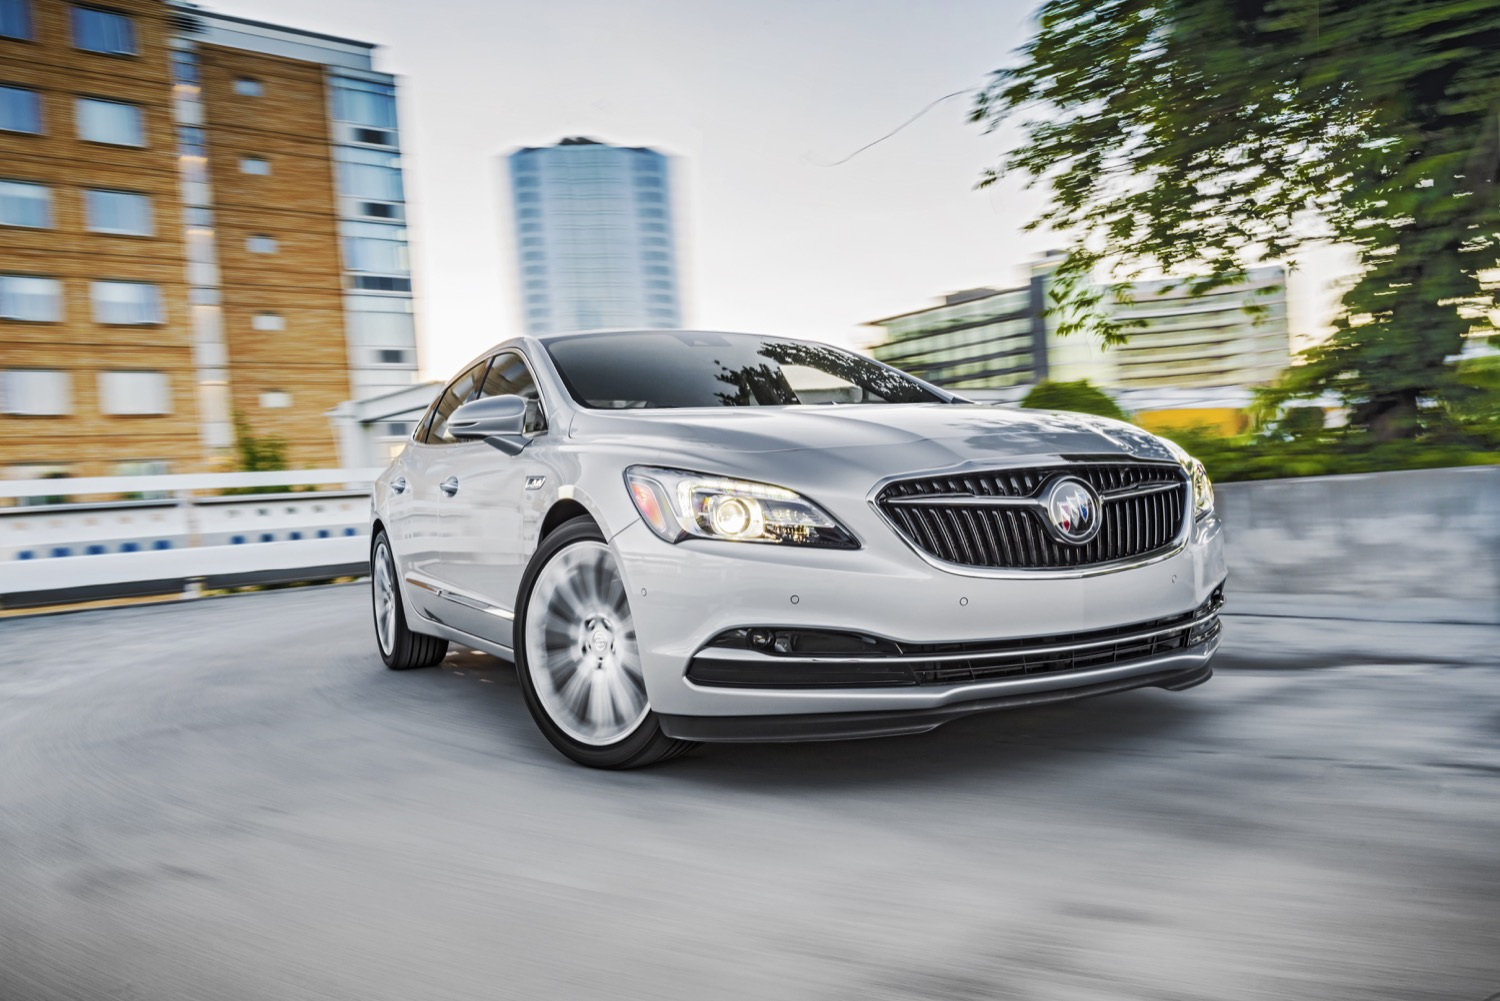 Buick Lacrosse Discount Totals $9,000 February 2020 | Gm 2021 Buick Lacrosse Cost, Awd, Build And Price